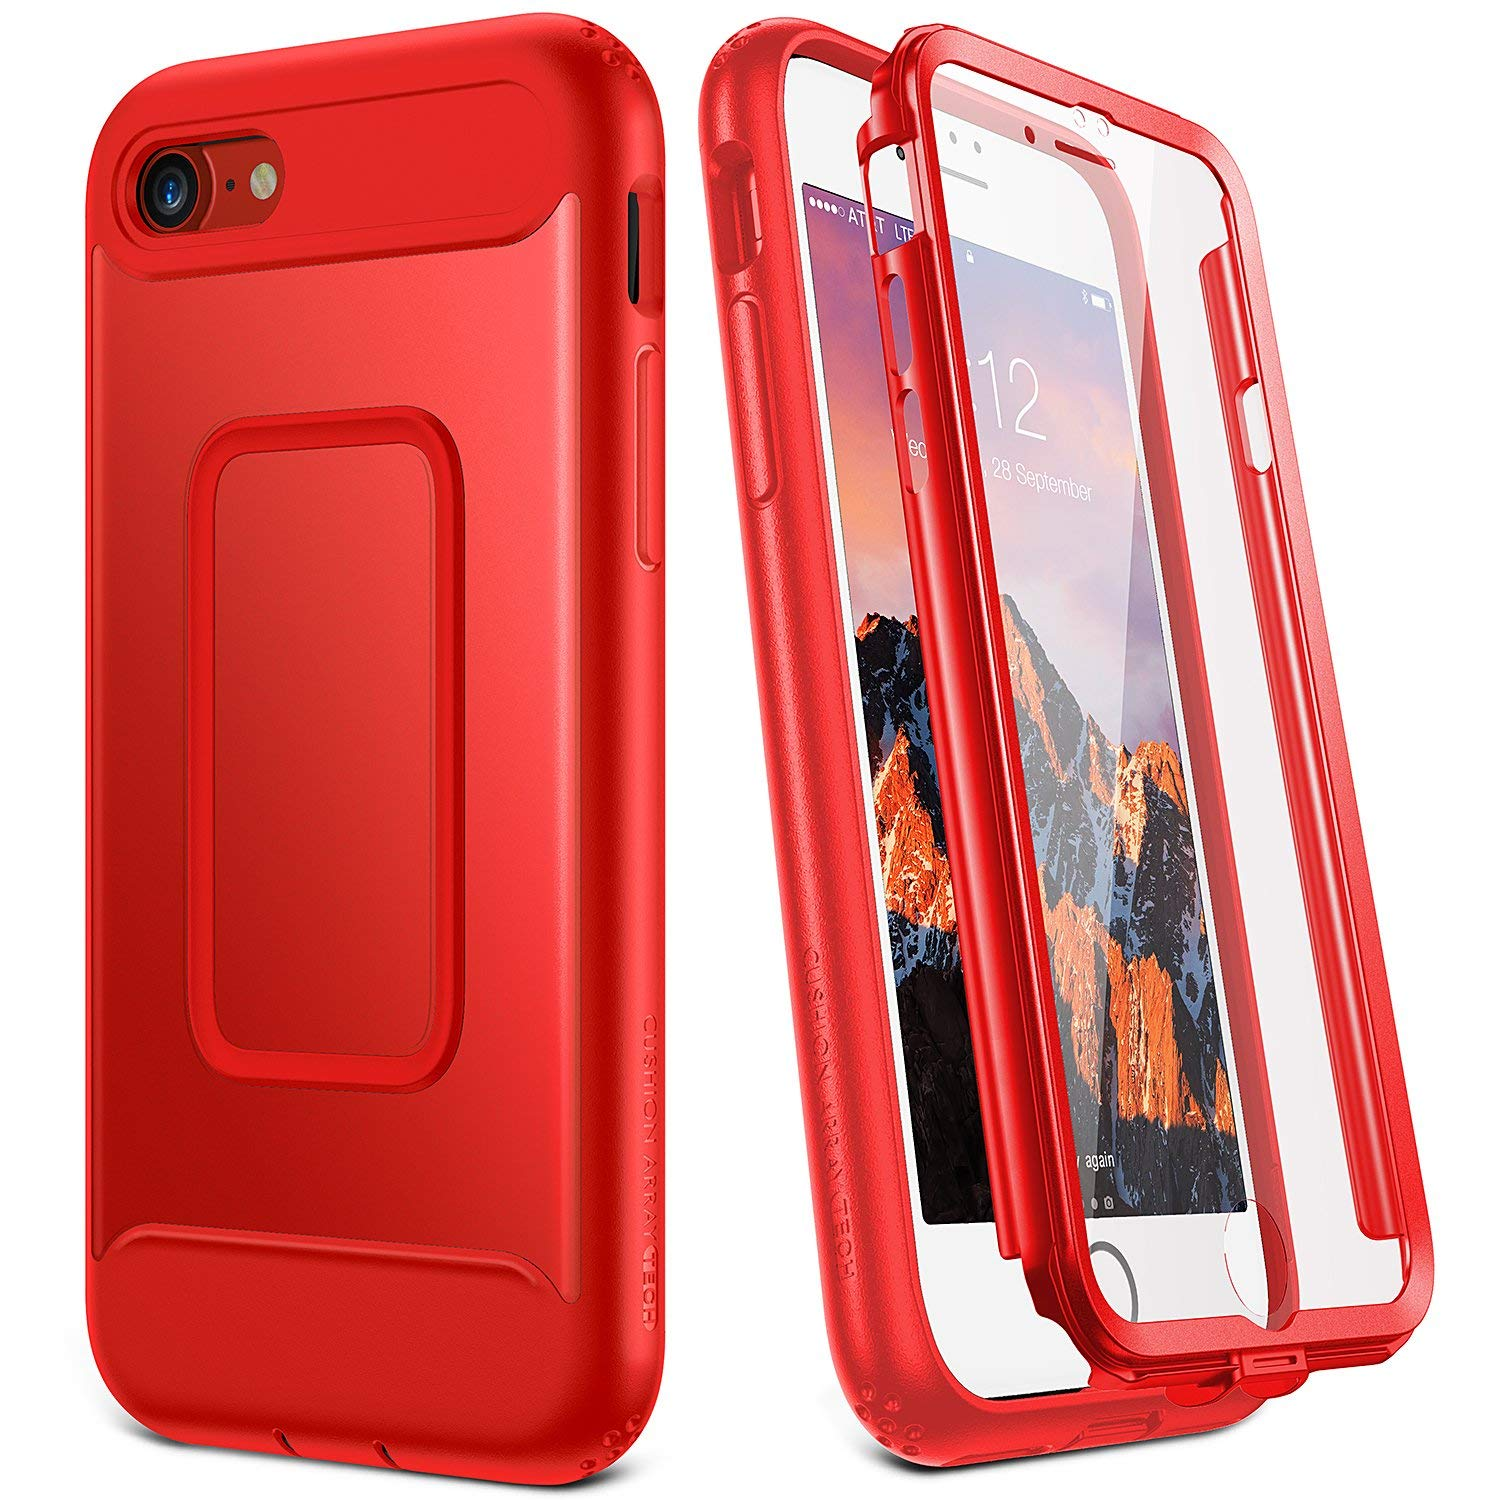 iphone 7 4.7 inch hard case shockproof full body cover